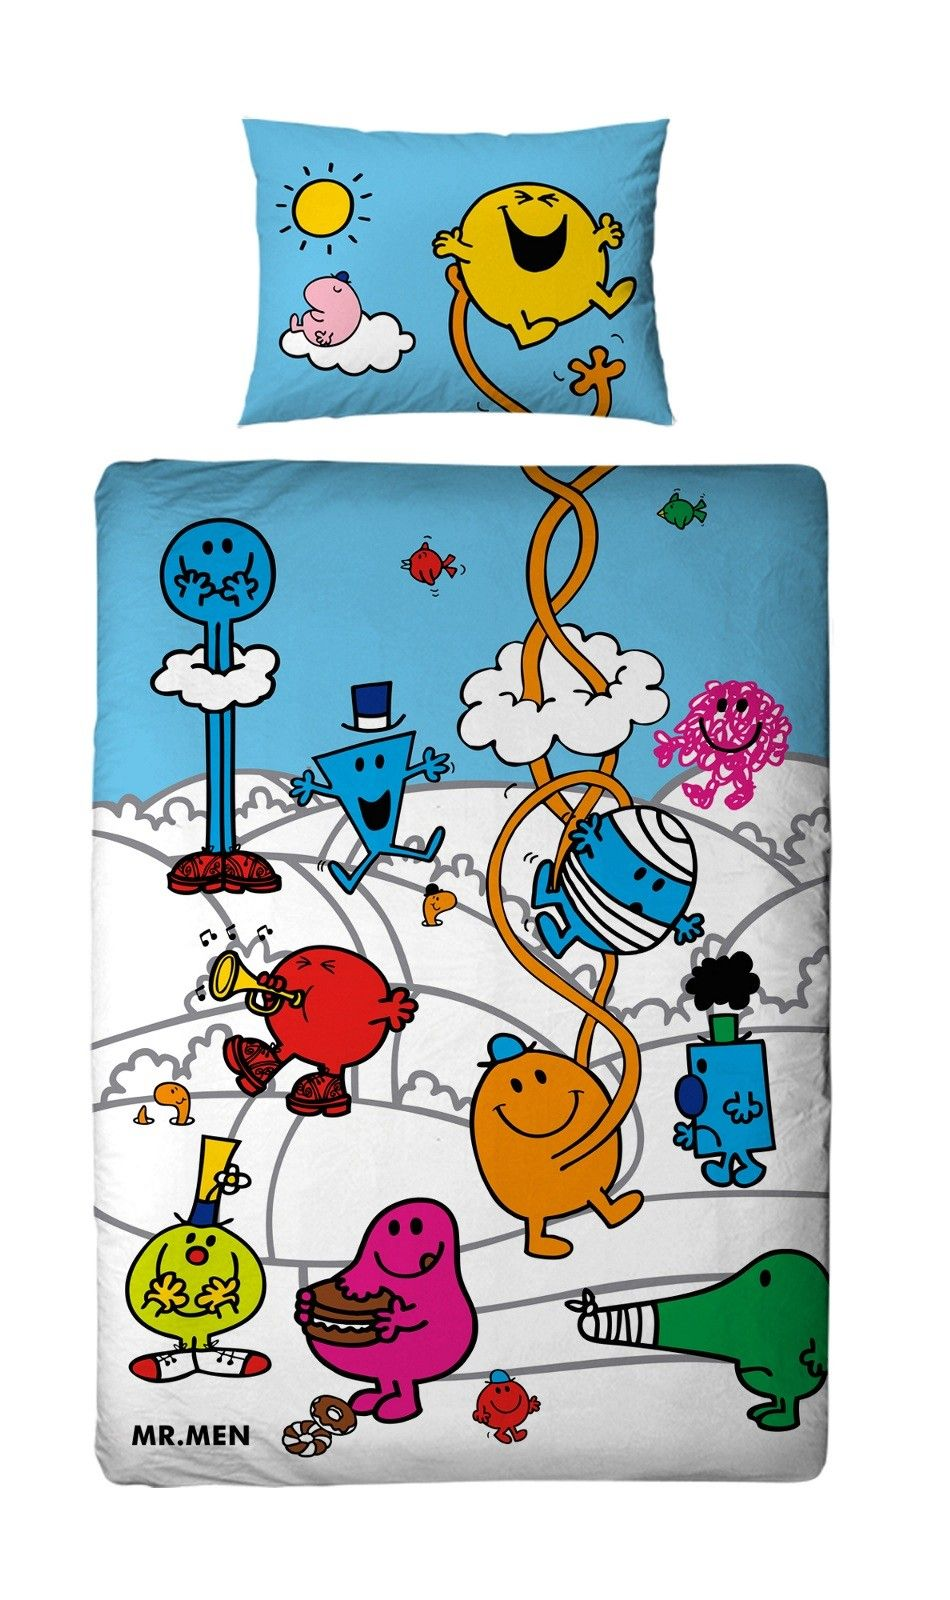 parure de lit enfant r versible mr men little miss monsieur madame parures de lit. Black Bedroom Furniture Sets. Home Design Ideas